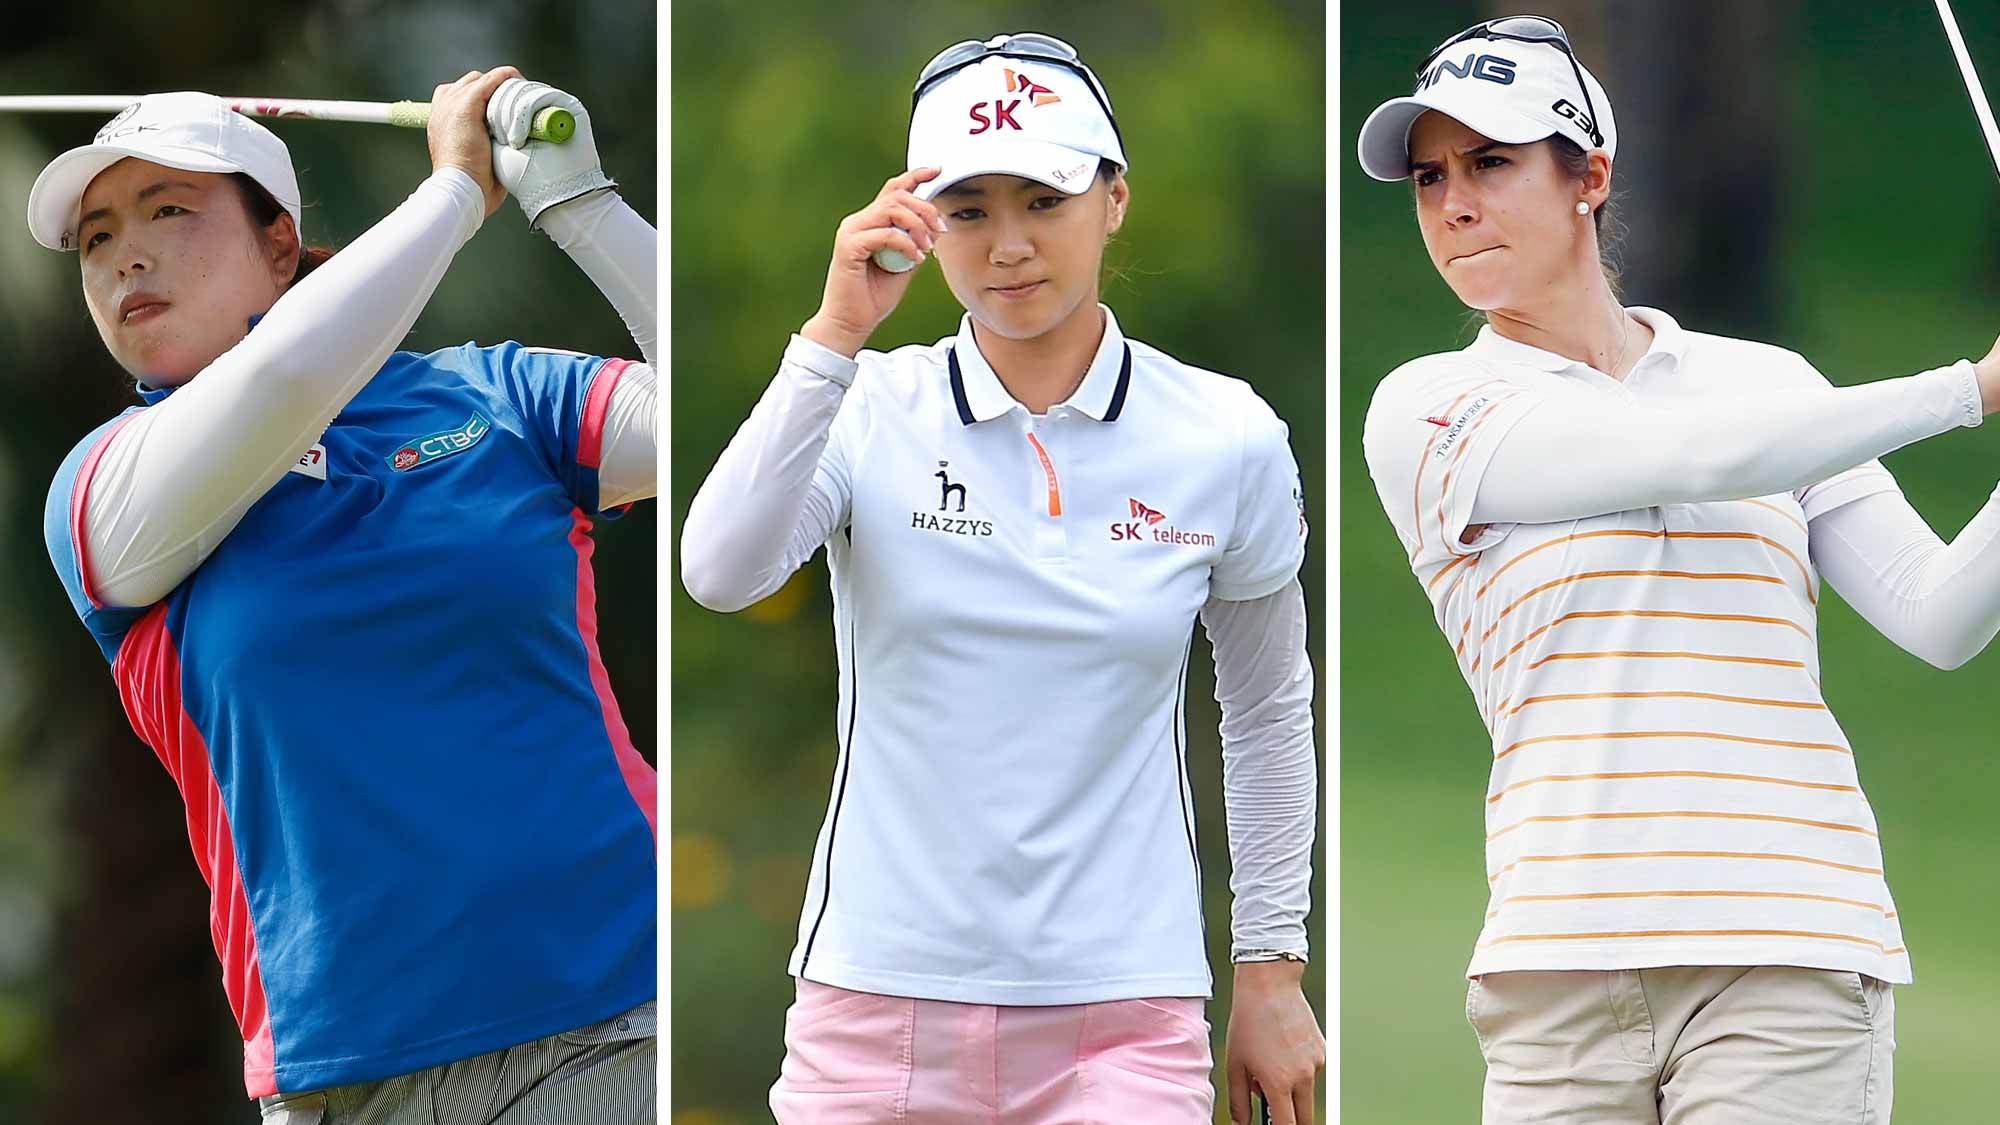 UL Sponsors Professional LPGA TOUR Golfers, Shanshan Feng, Na Yeon Choi, and Azahara Munoz in Company's First Ever Athlete Sponsorships